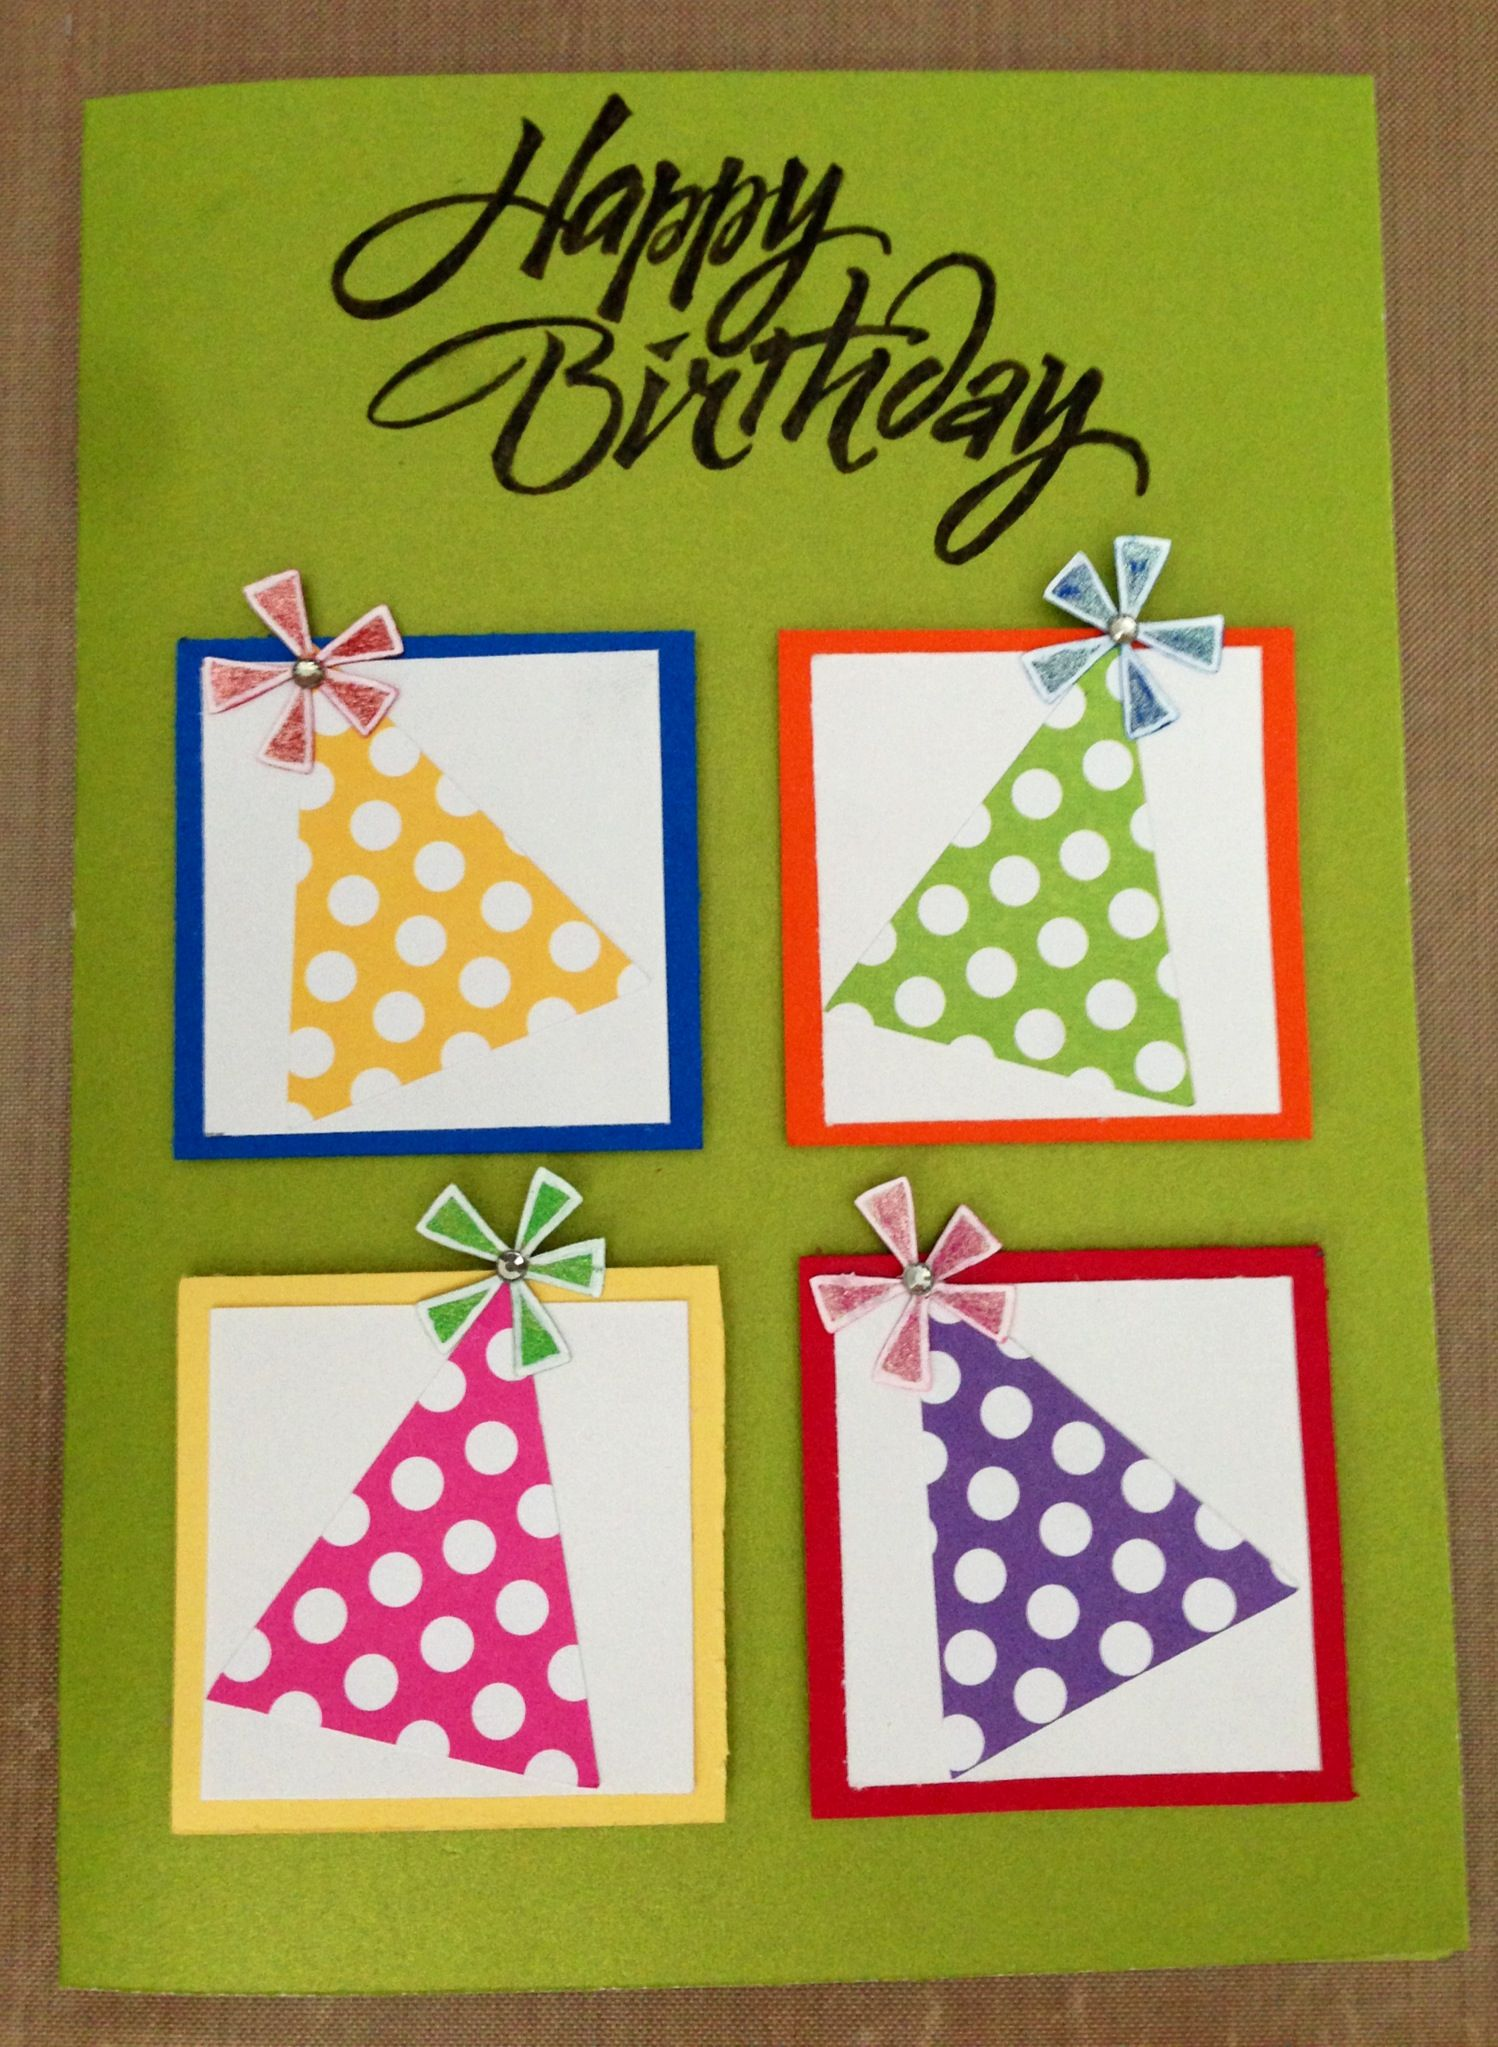 Birthday card httpdosomethingbirthday stamosday birthday card httpdosomethingbirthday bookmarktalkfo